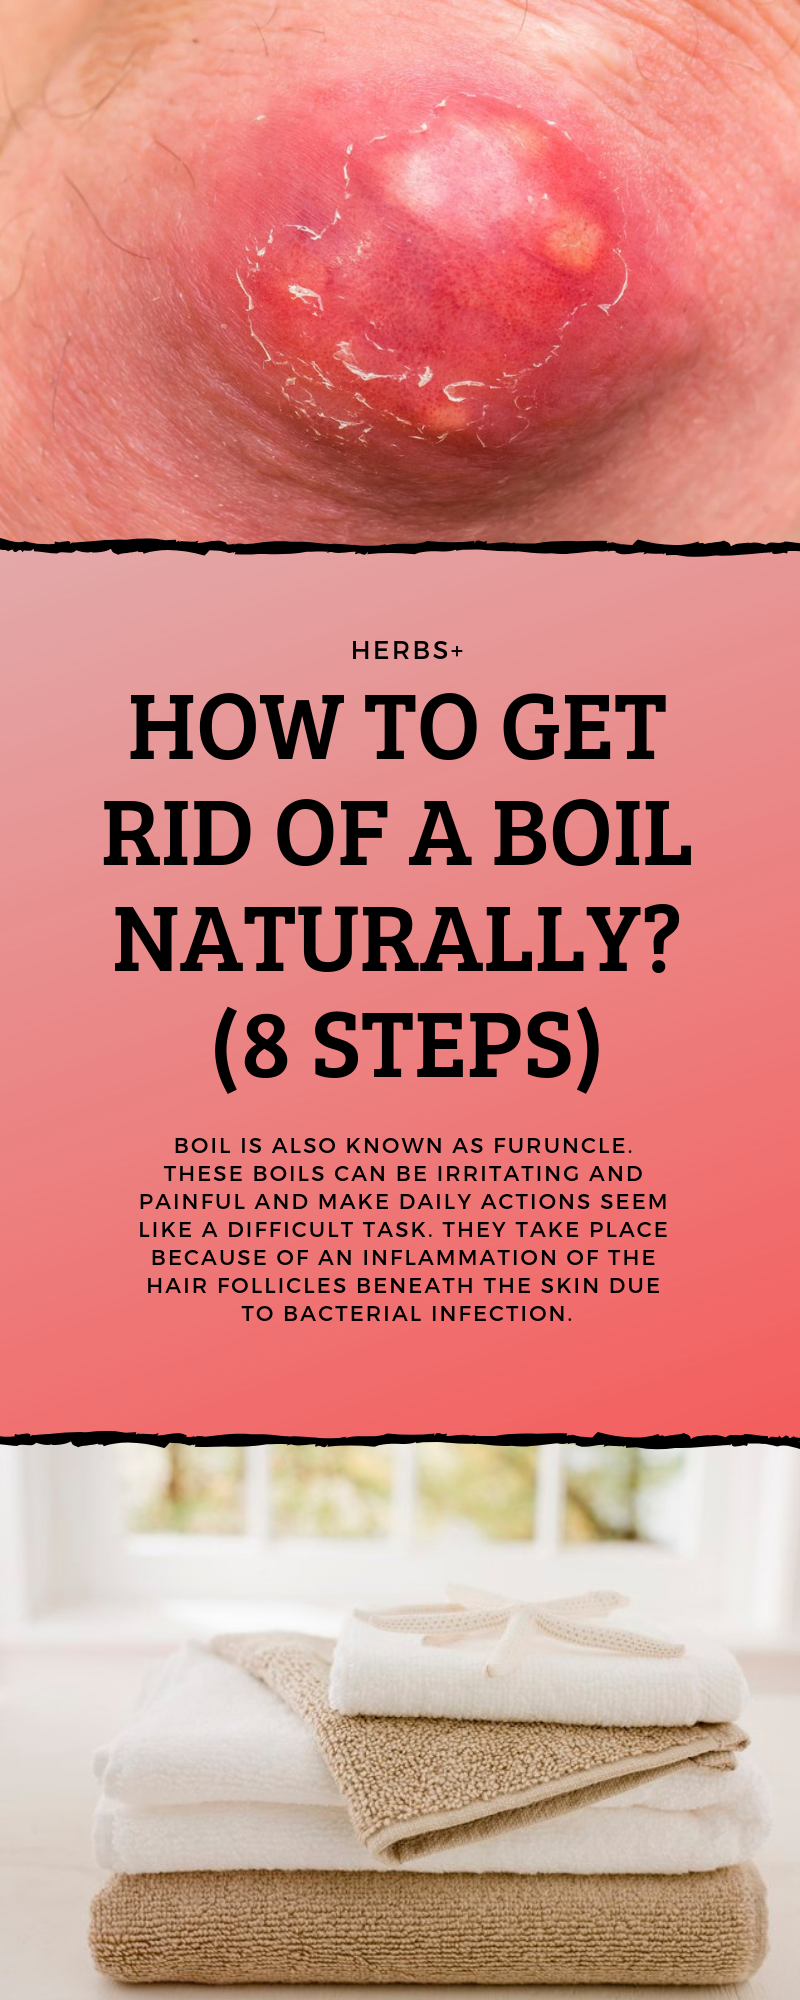 How To Get Rid Of A Boil Naturally 8 Steps Herbal Cure Cold Home Remedies Boil Remedies